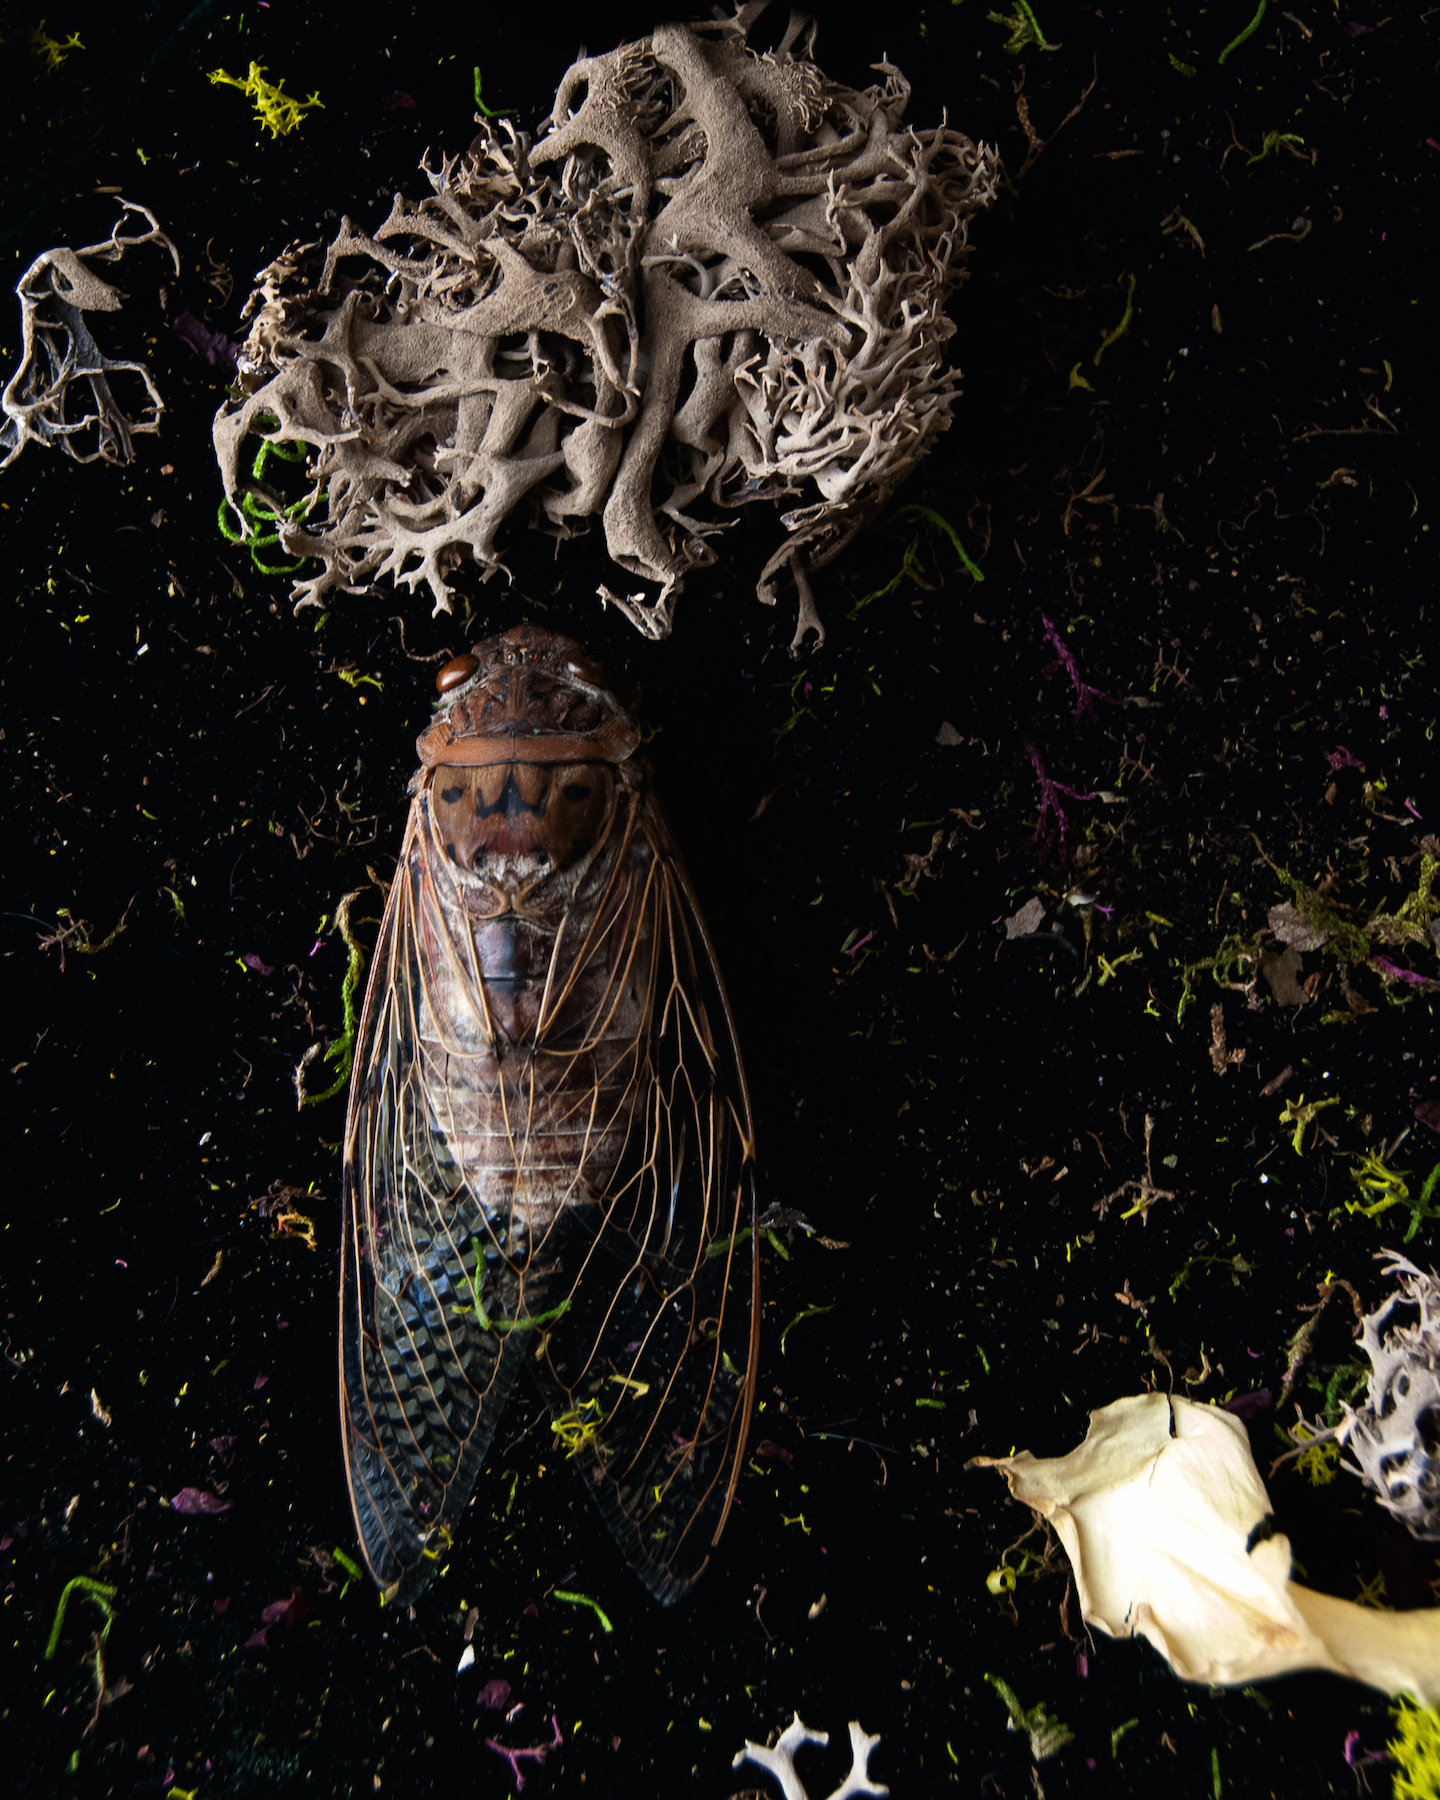 Nanc_Post_Mortem_Portraits_Cicada_with_Reindeer_Moss_6.jpg